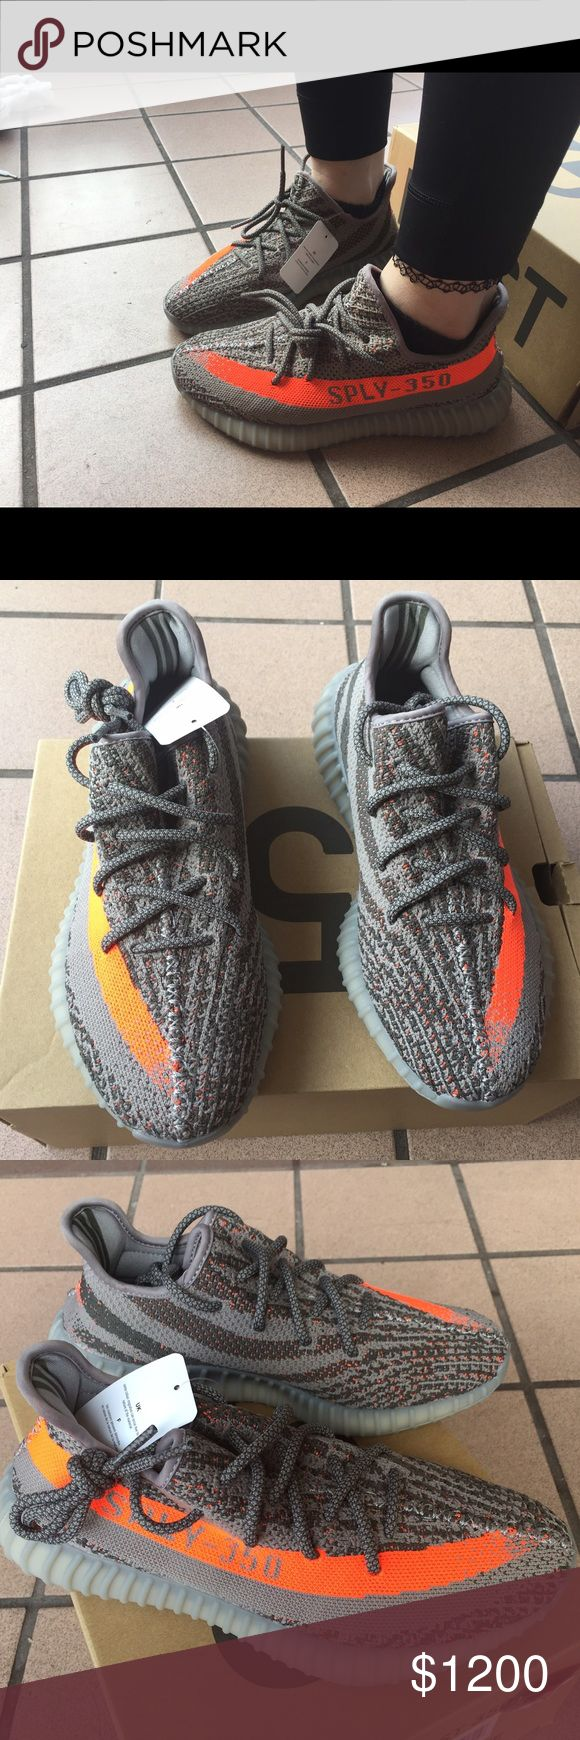 Yeezy Boost 350 V2 Won the raffle at footlocker last month. Size 7.5 for men. Size 8.5 for women. Brand new. Contact me for lower listing price adidas Shoes Sneakers